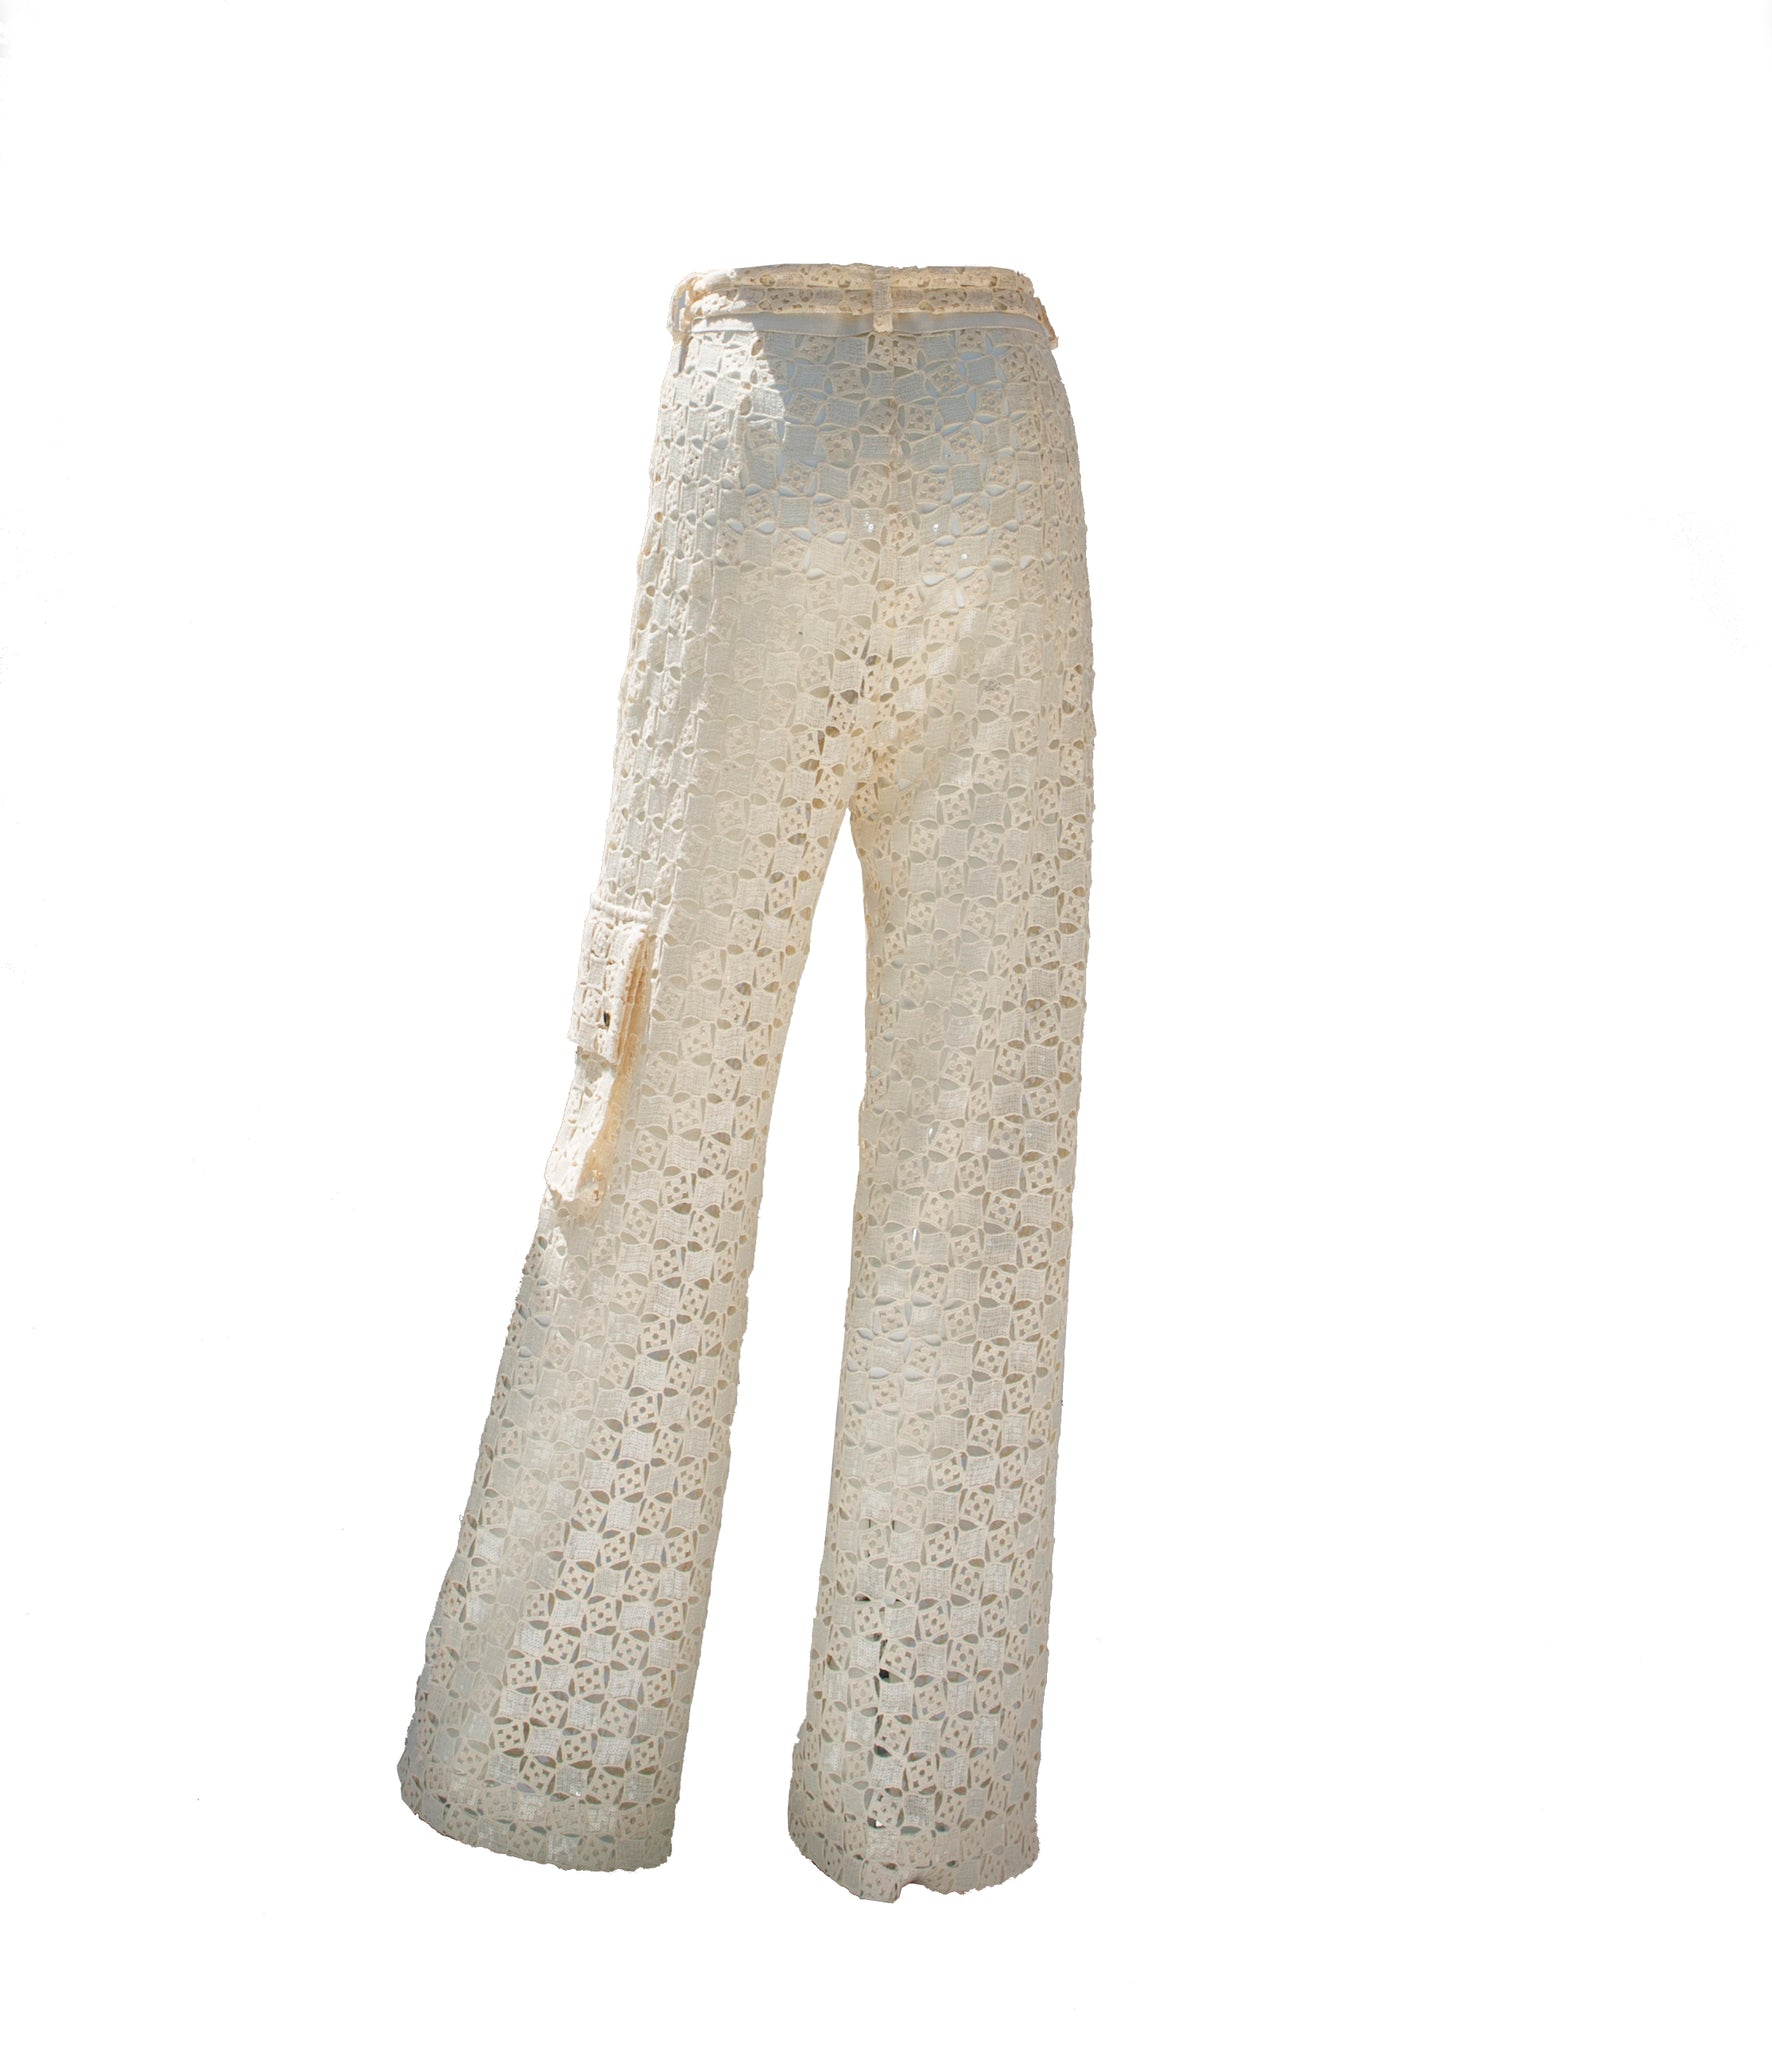 Sequined White Cotton Long Trousers